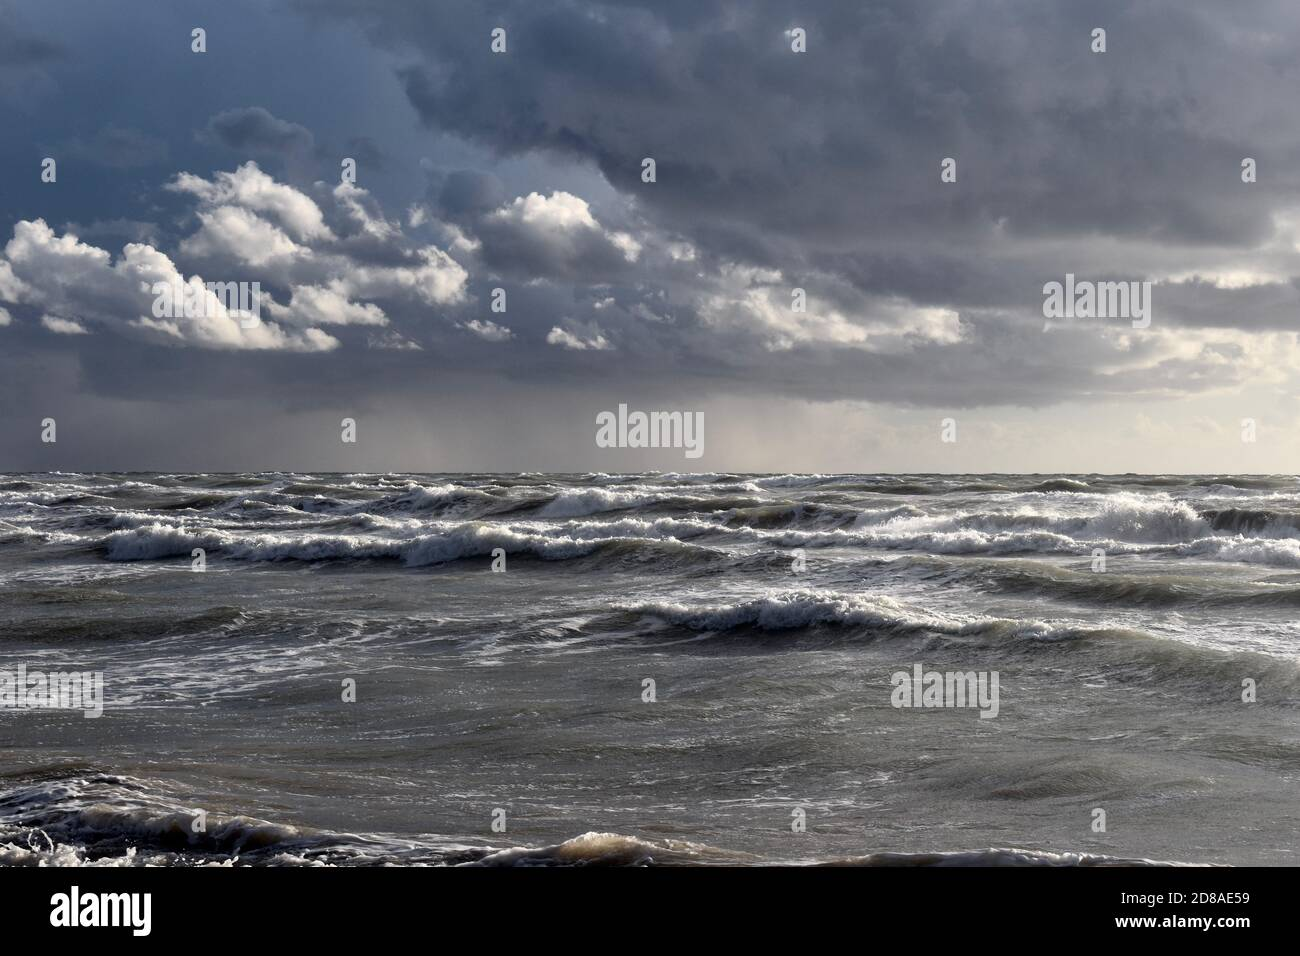 Severe stormy weather on the Tyrrenian sea. Big waves. Grey and deep blue colors. Sky overcast with greyish clouds. Stock Photo